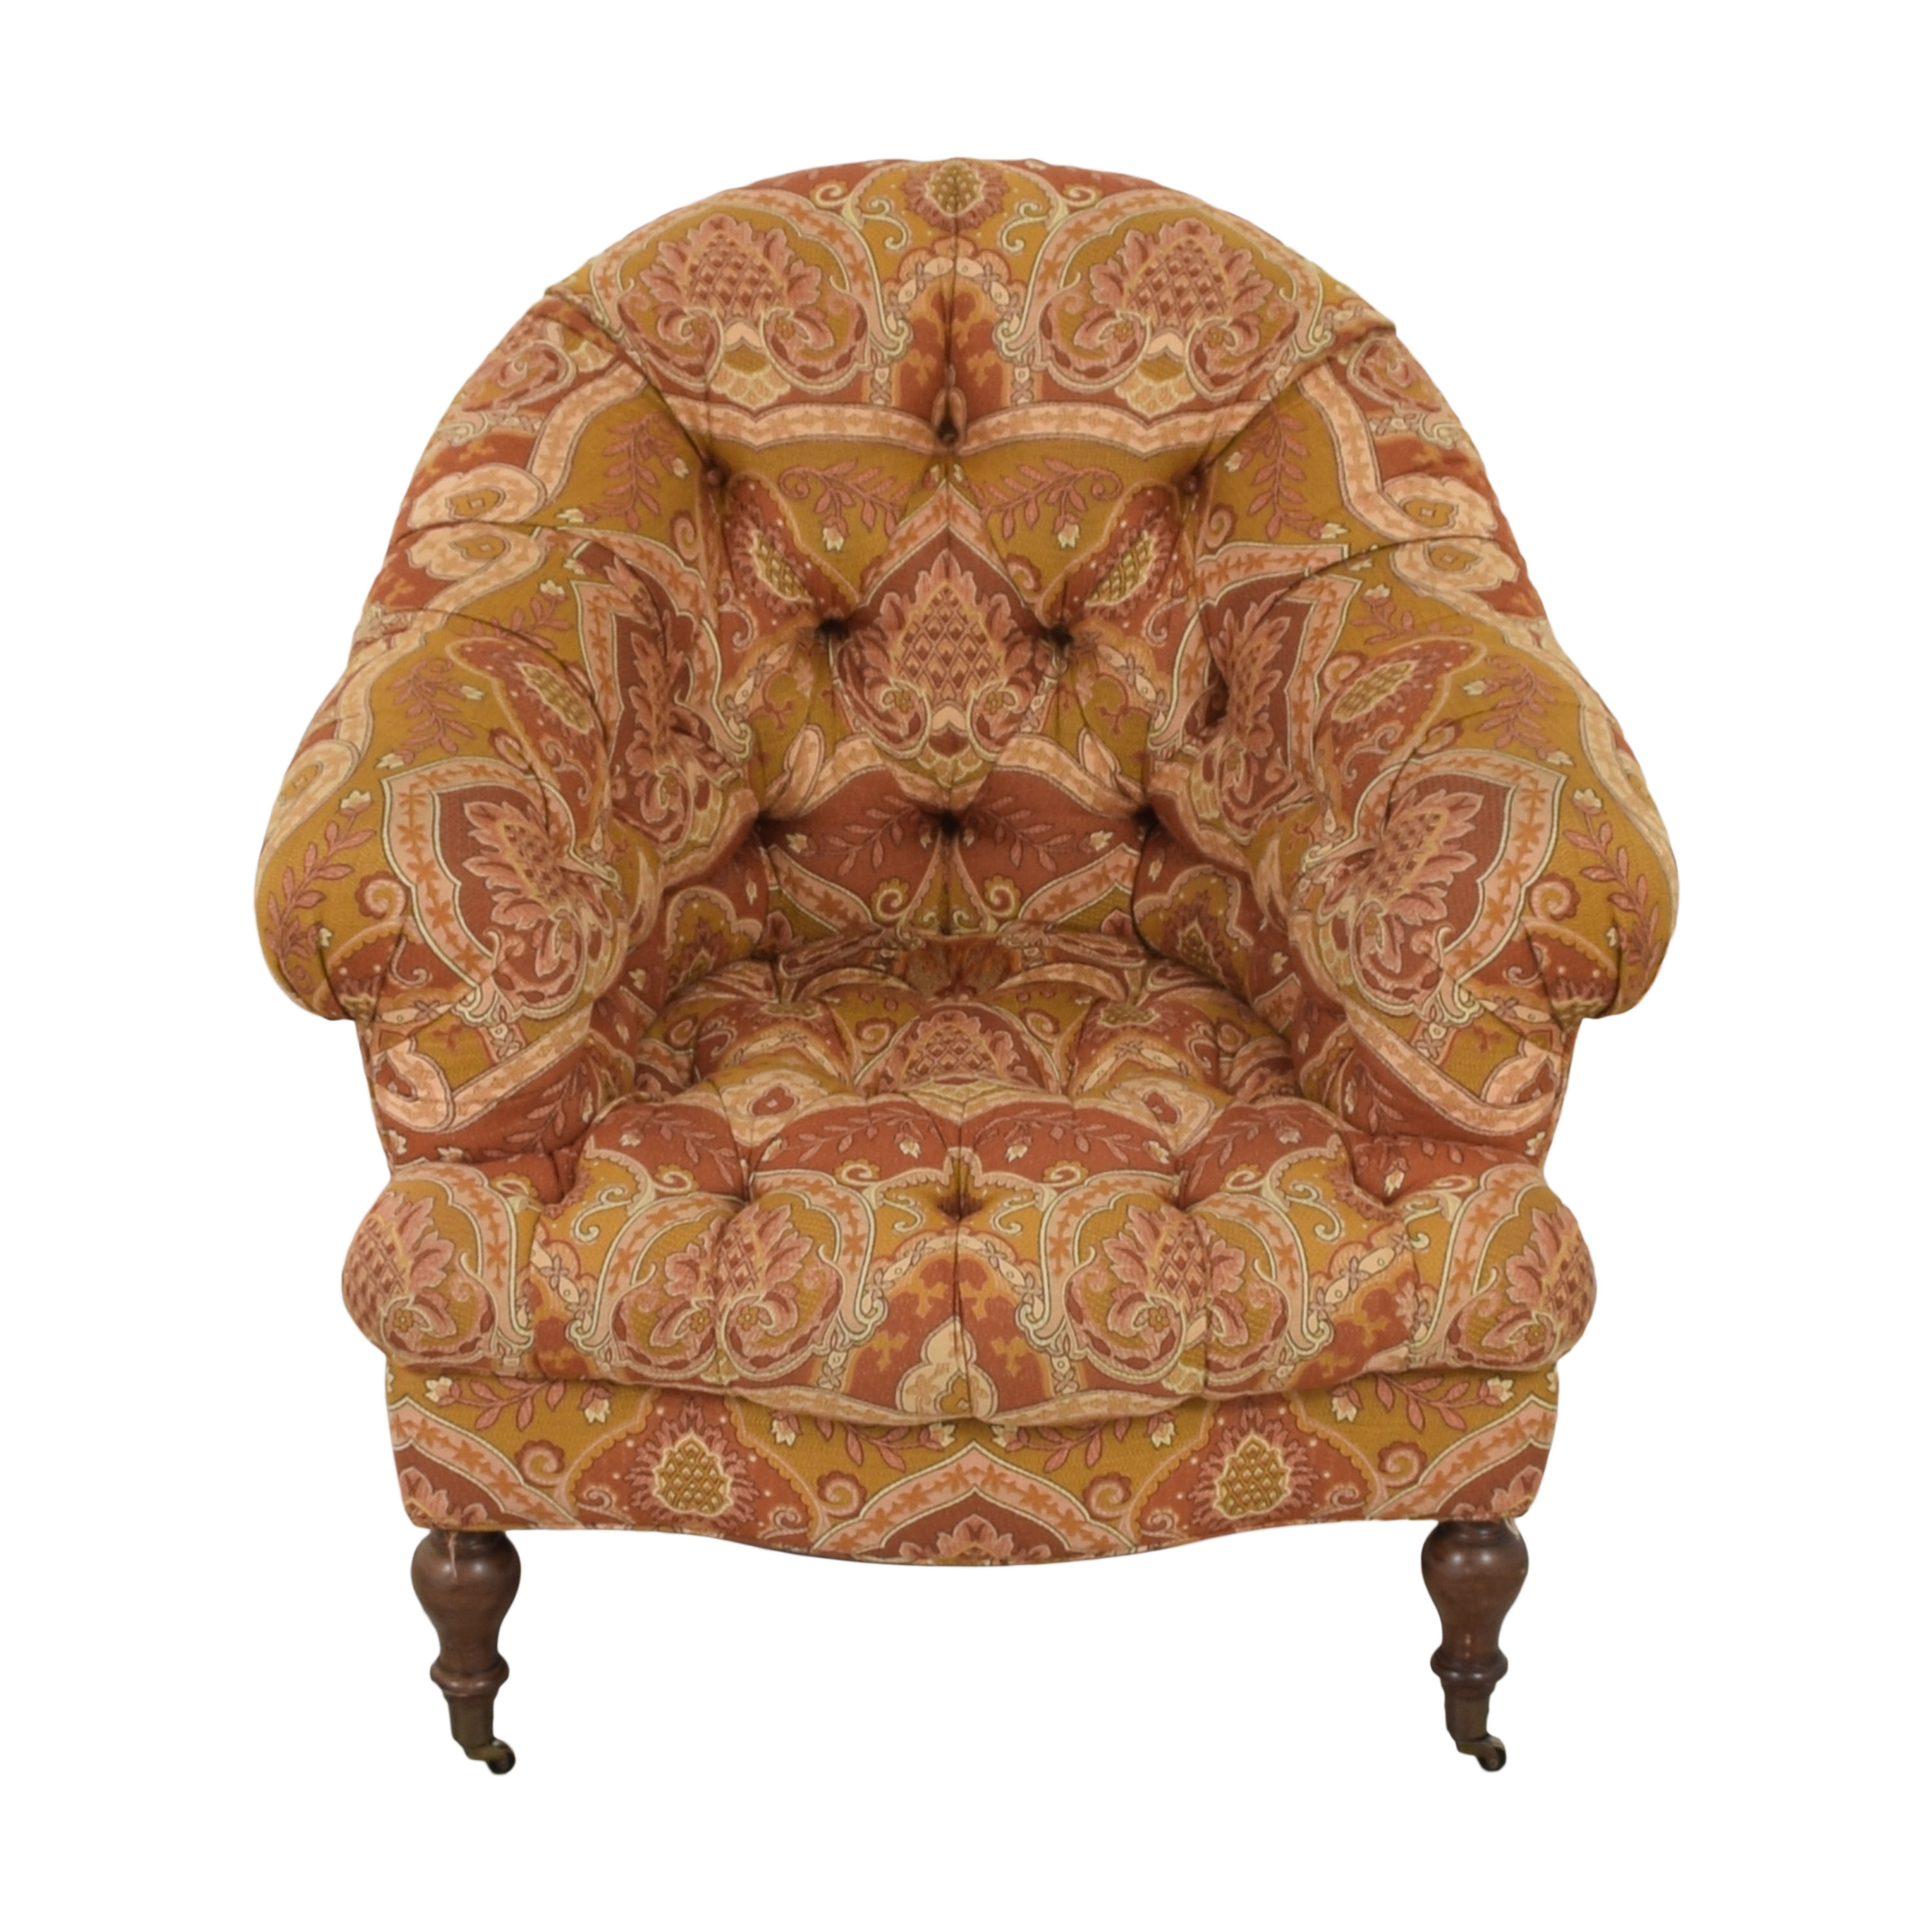 O. Henry House O Henry House Chesterfield Chair used